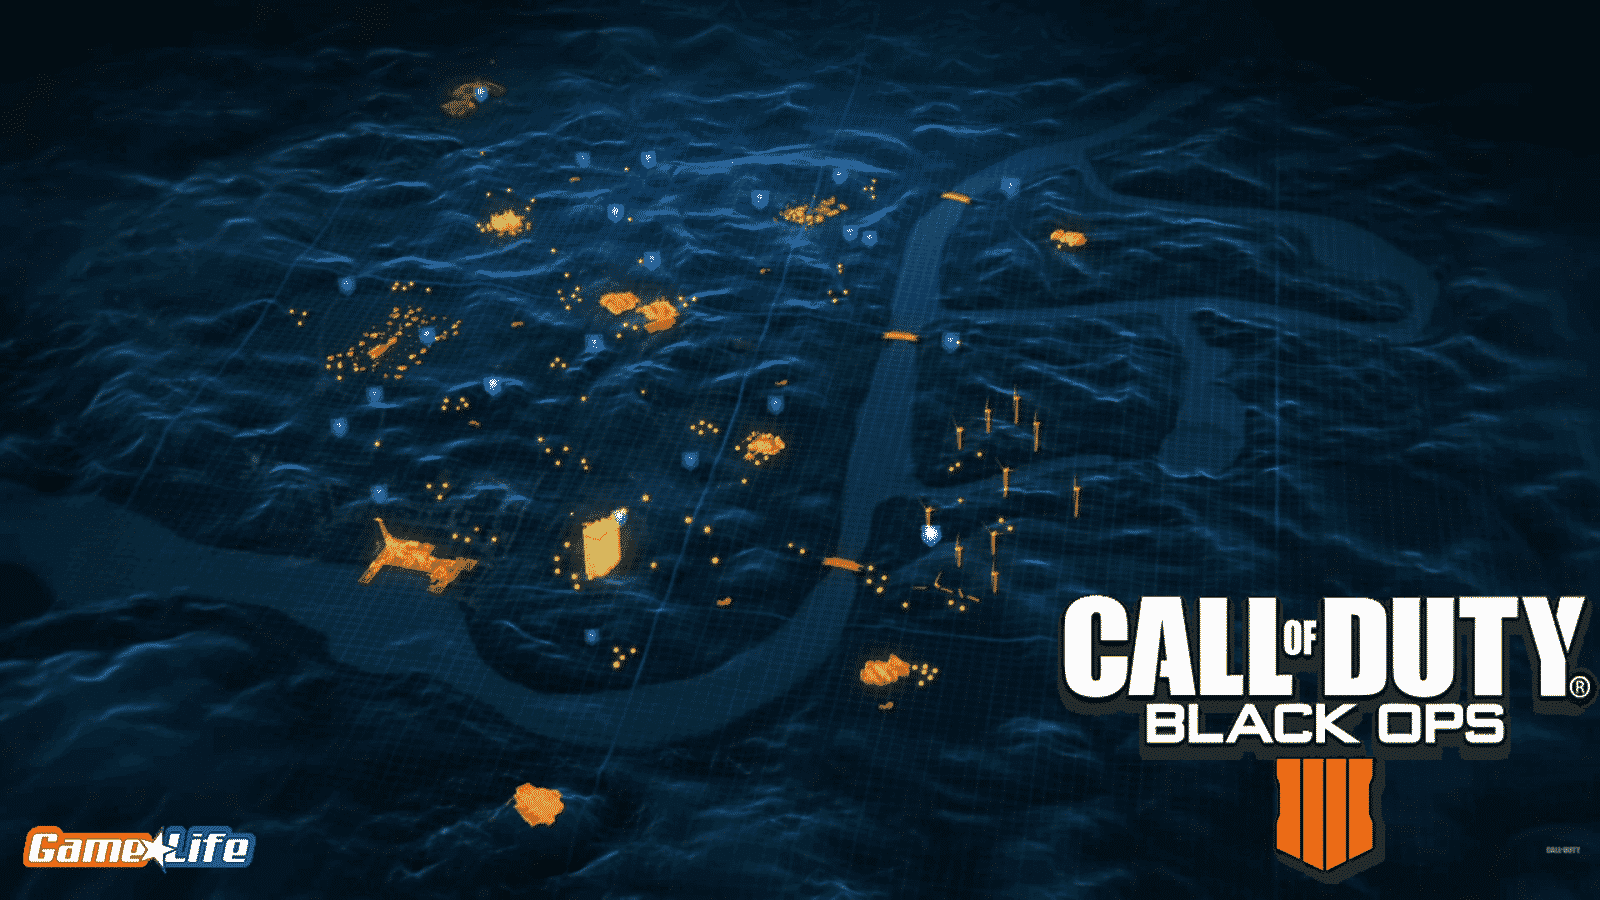 Black Ops 4 Blackout Map Nuketown Universe Call of Duty Guide TreyArch Battle Royale